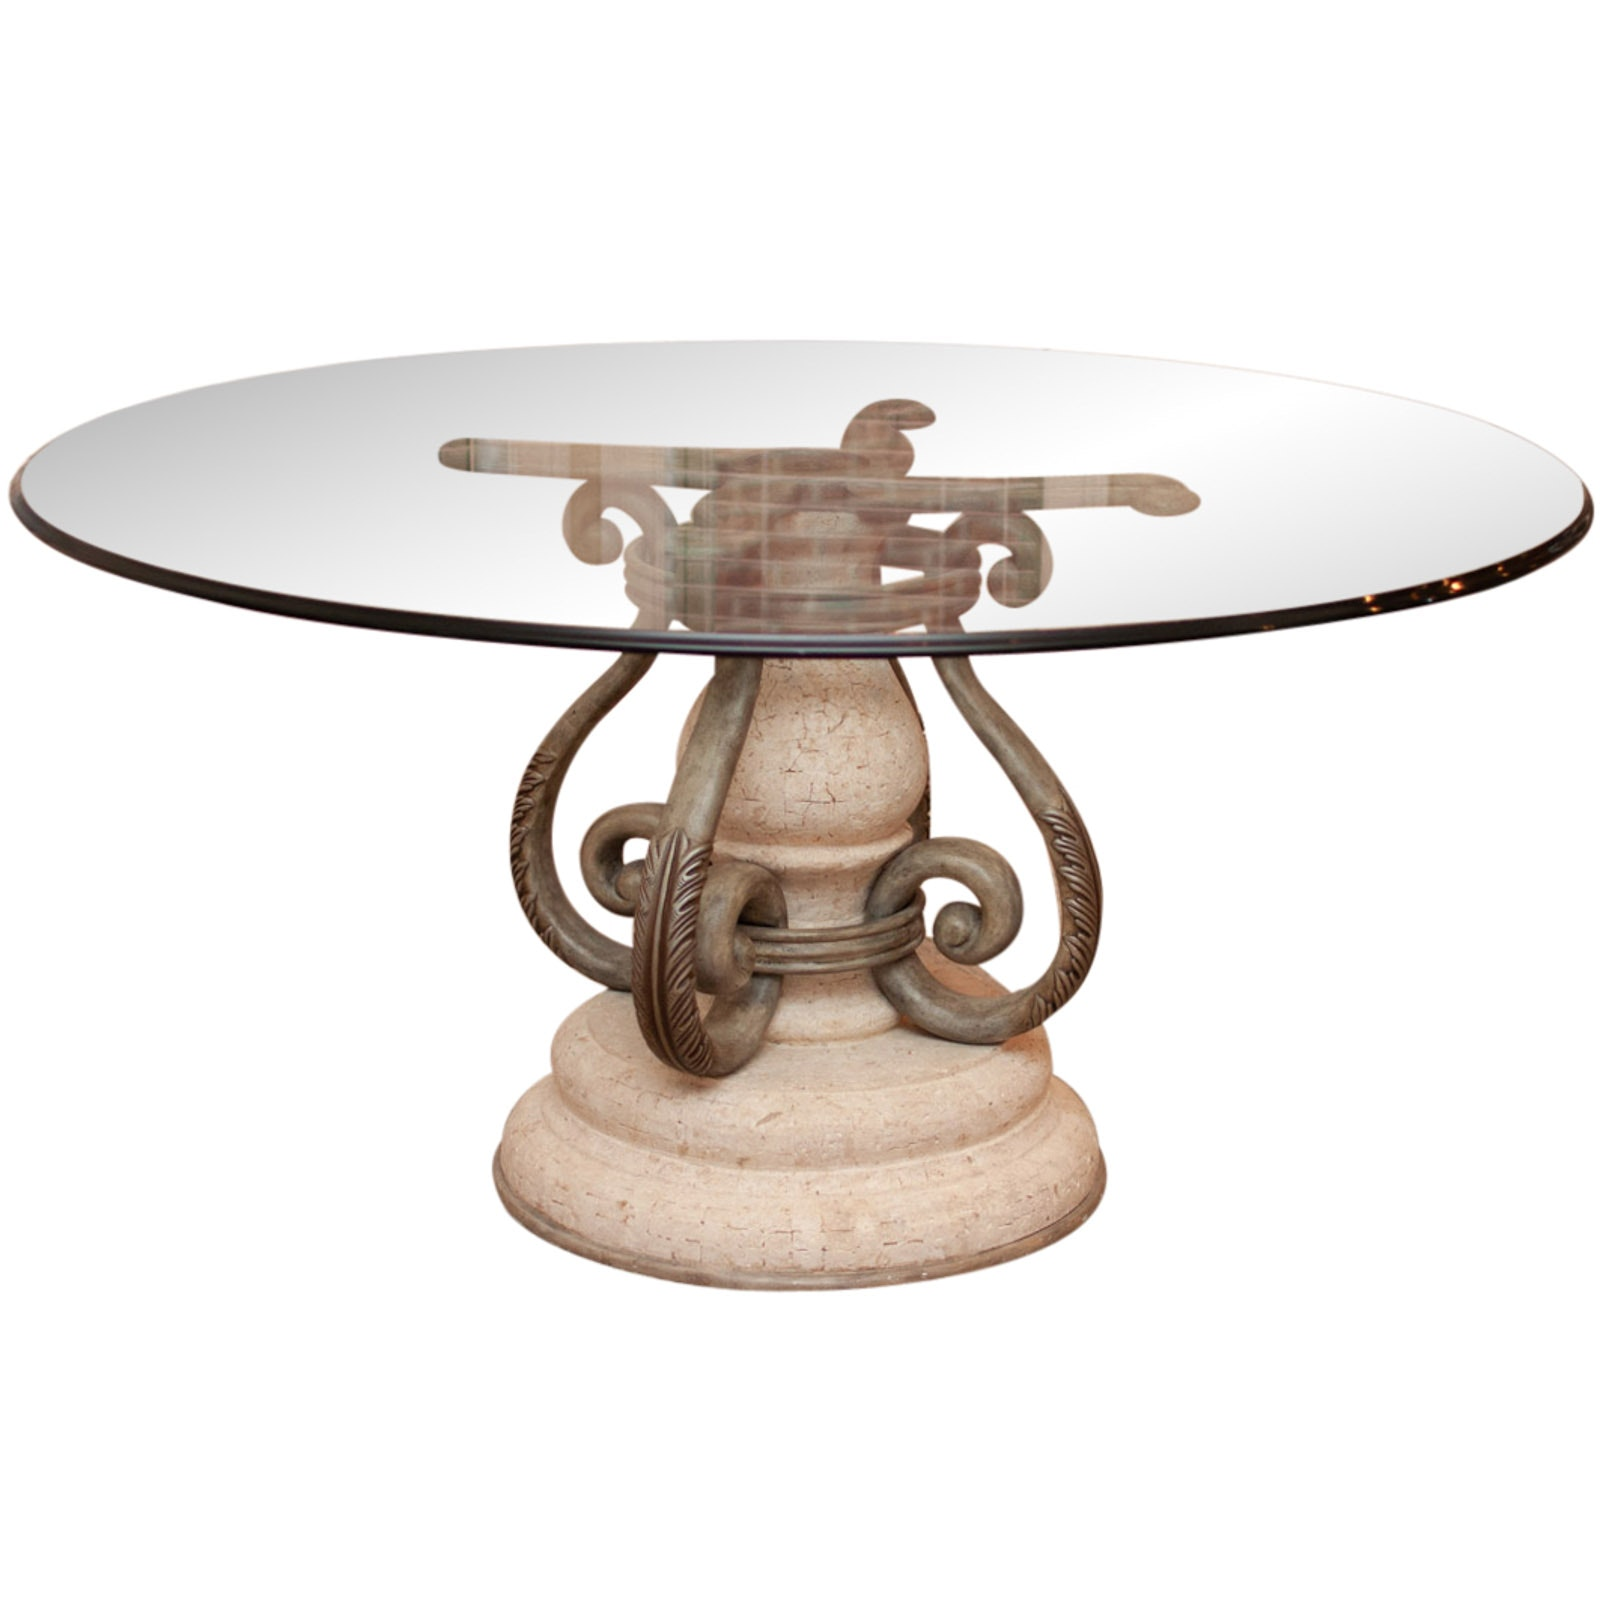 Modern Neoclassical Style Glass Top Dining Table by Henredon with Pads by OTPC